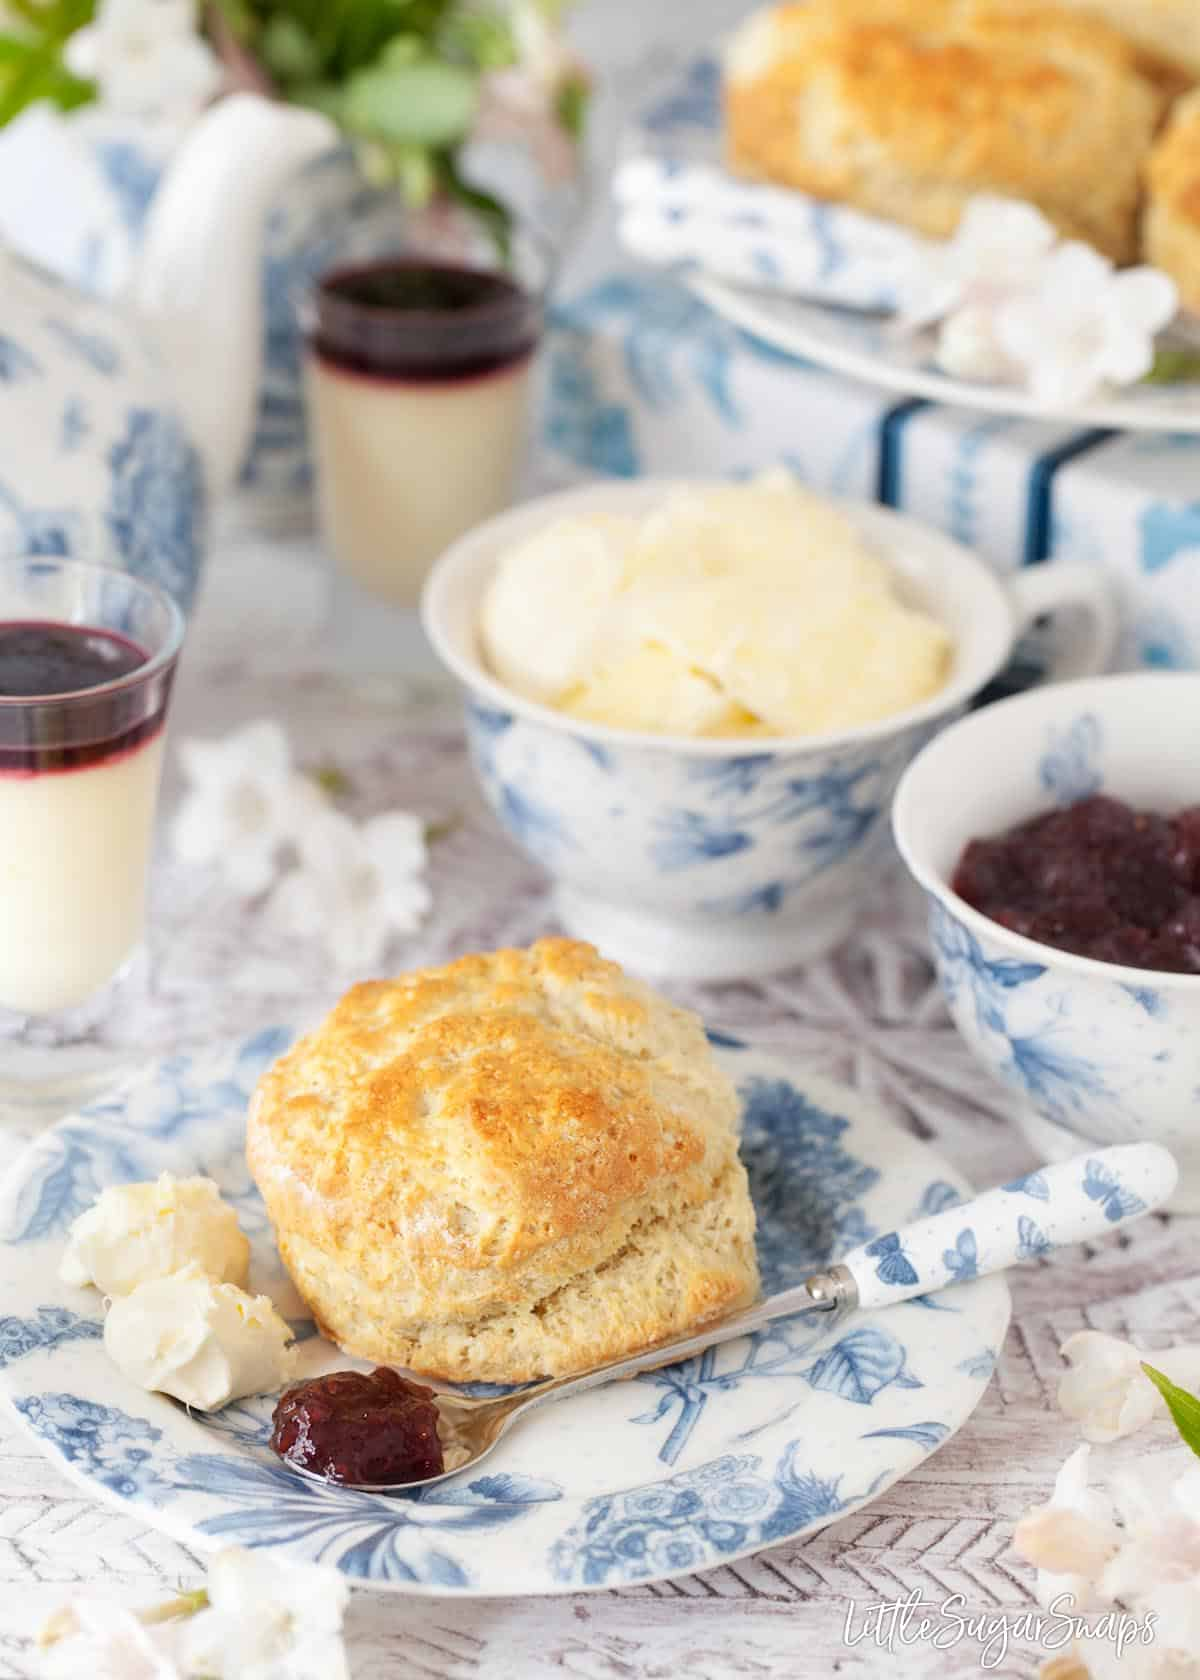 An English scone on a pretty blue and whote side plate with 2 scoops of clotted cream and a spoon with raspberry jam resting on the plate. Cupfuls of cream and jam are in the background along with more scones, glasses of creamy lemon posset dessert and flowers